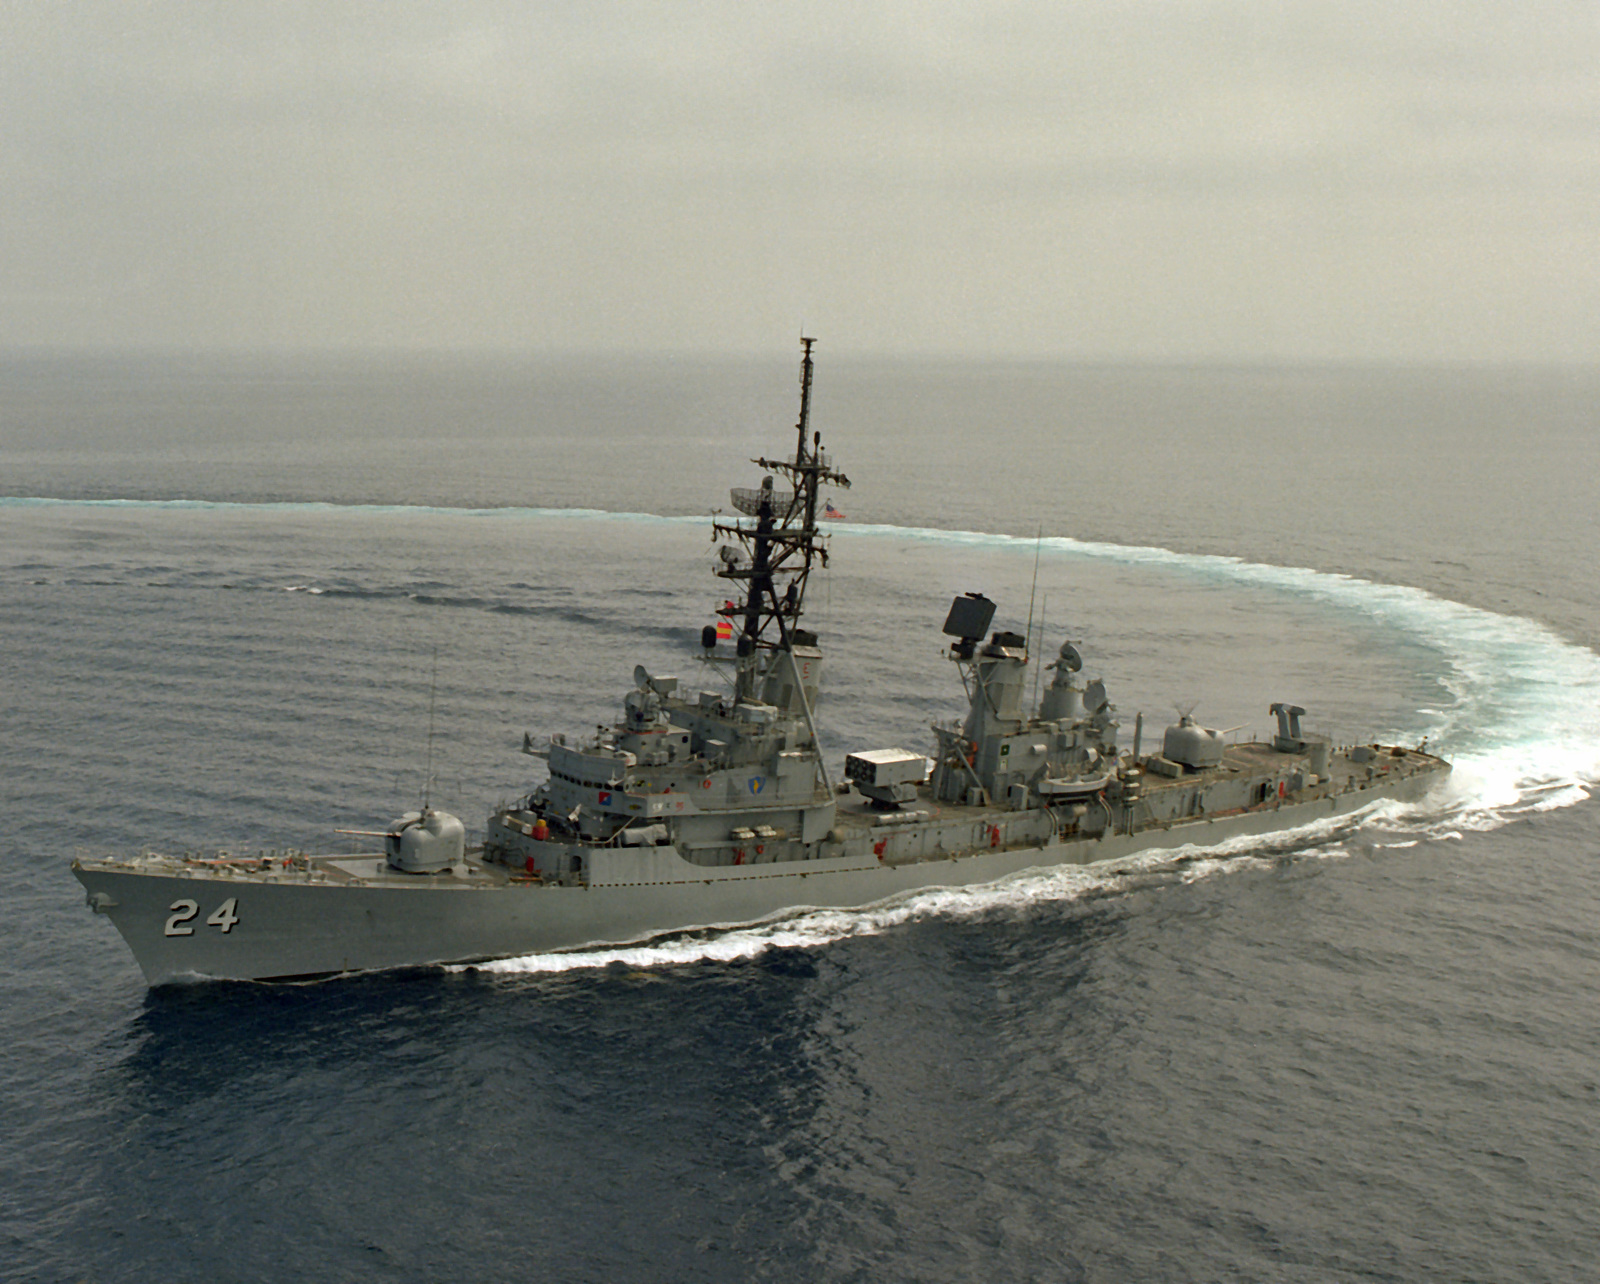 A port bow view of the guided missile destroyer USS WADDELL